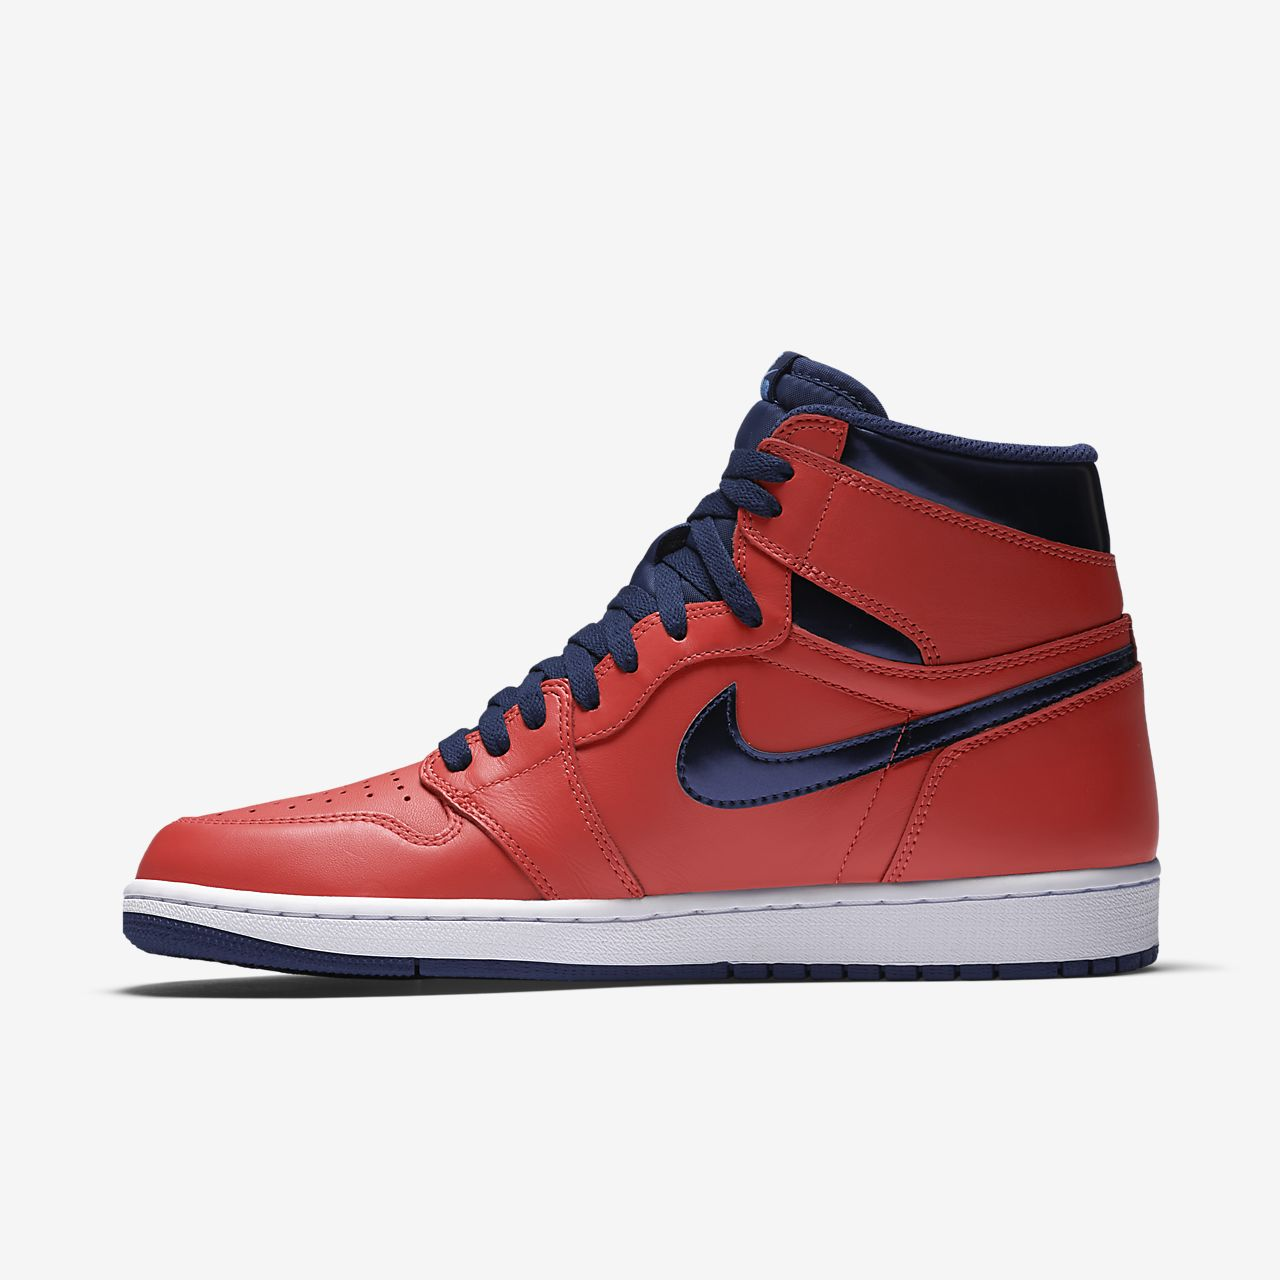 1ba839240ebd Air Jordan 1 Retro High OG Shoe. Nike.com IE